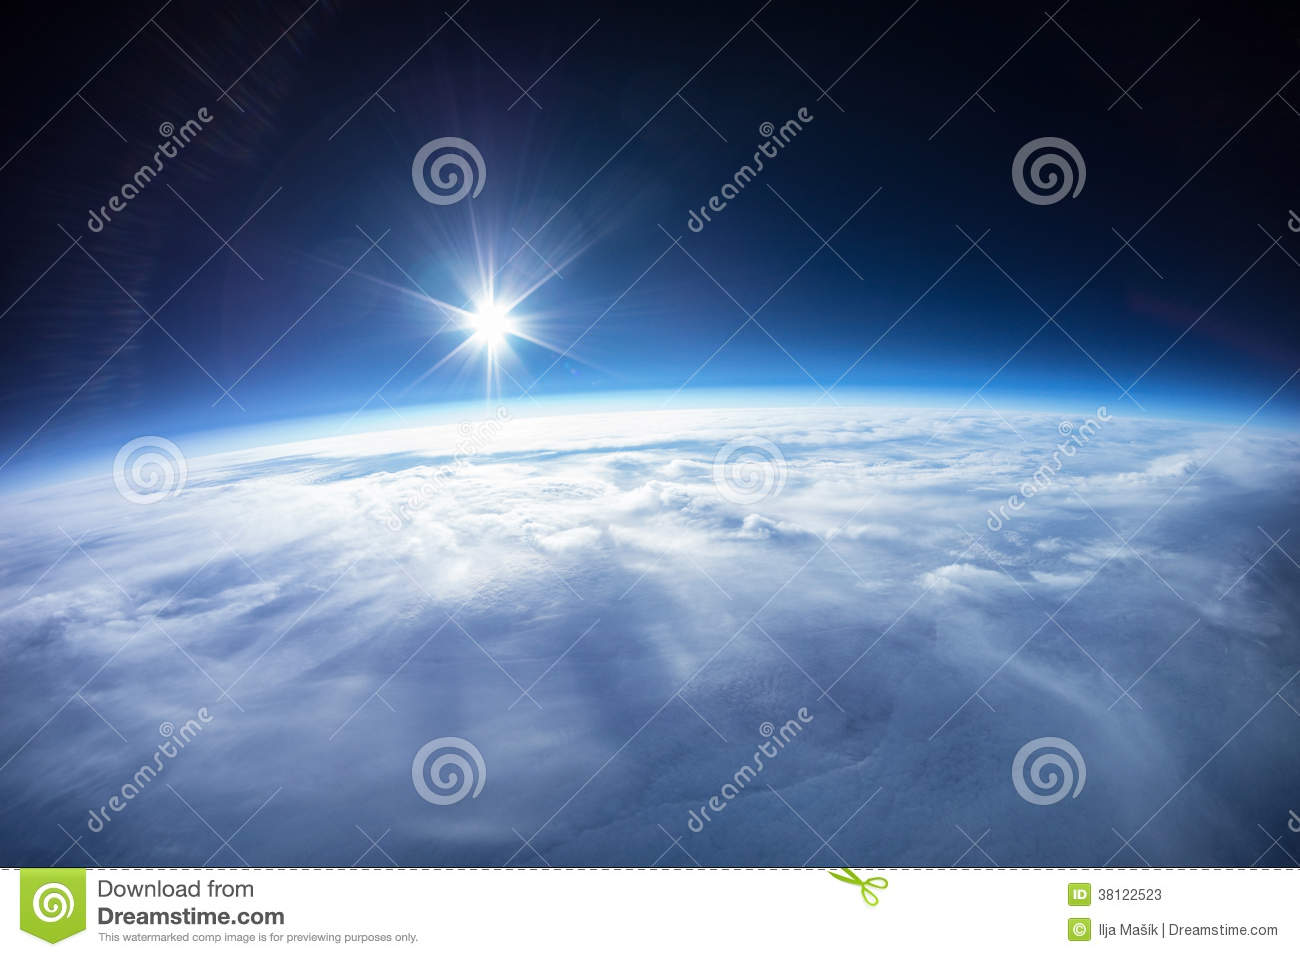 Real Photo - Near Space photography - 20km above ground